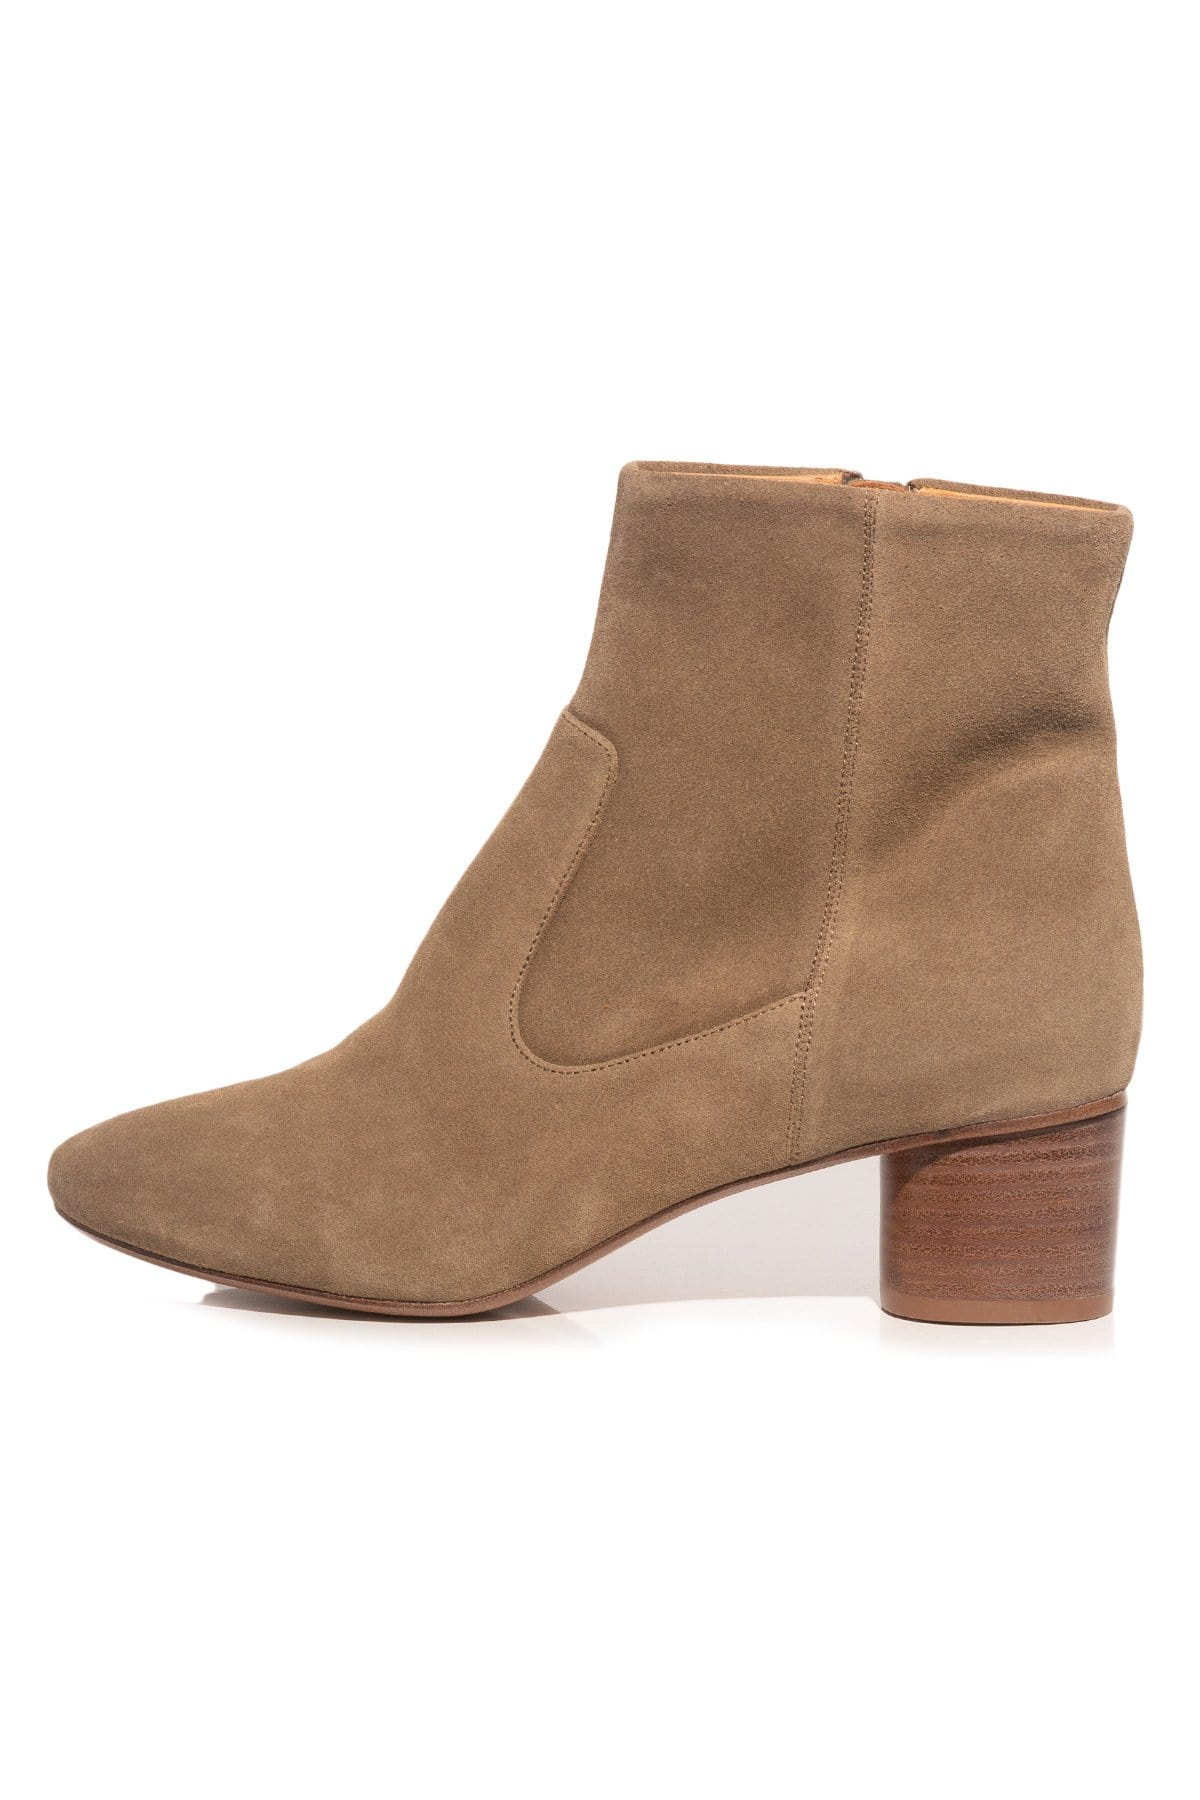 Dusta Boots in Taupe